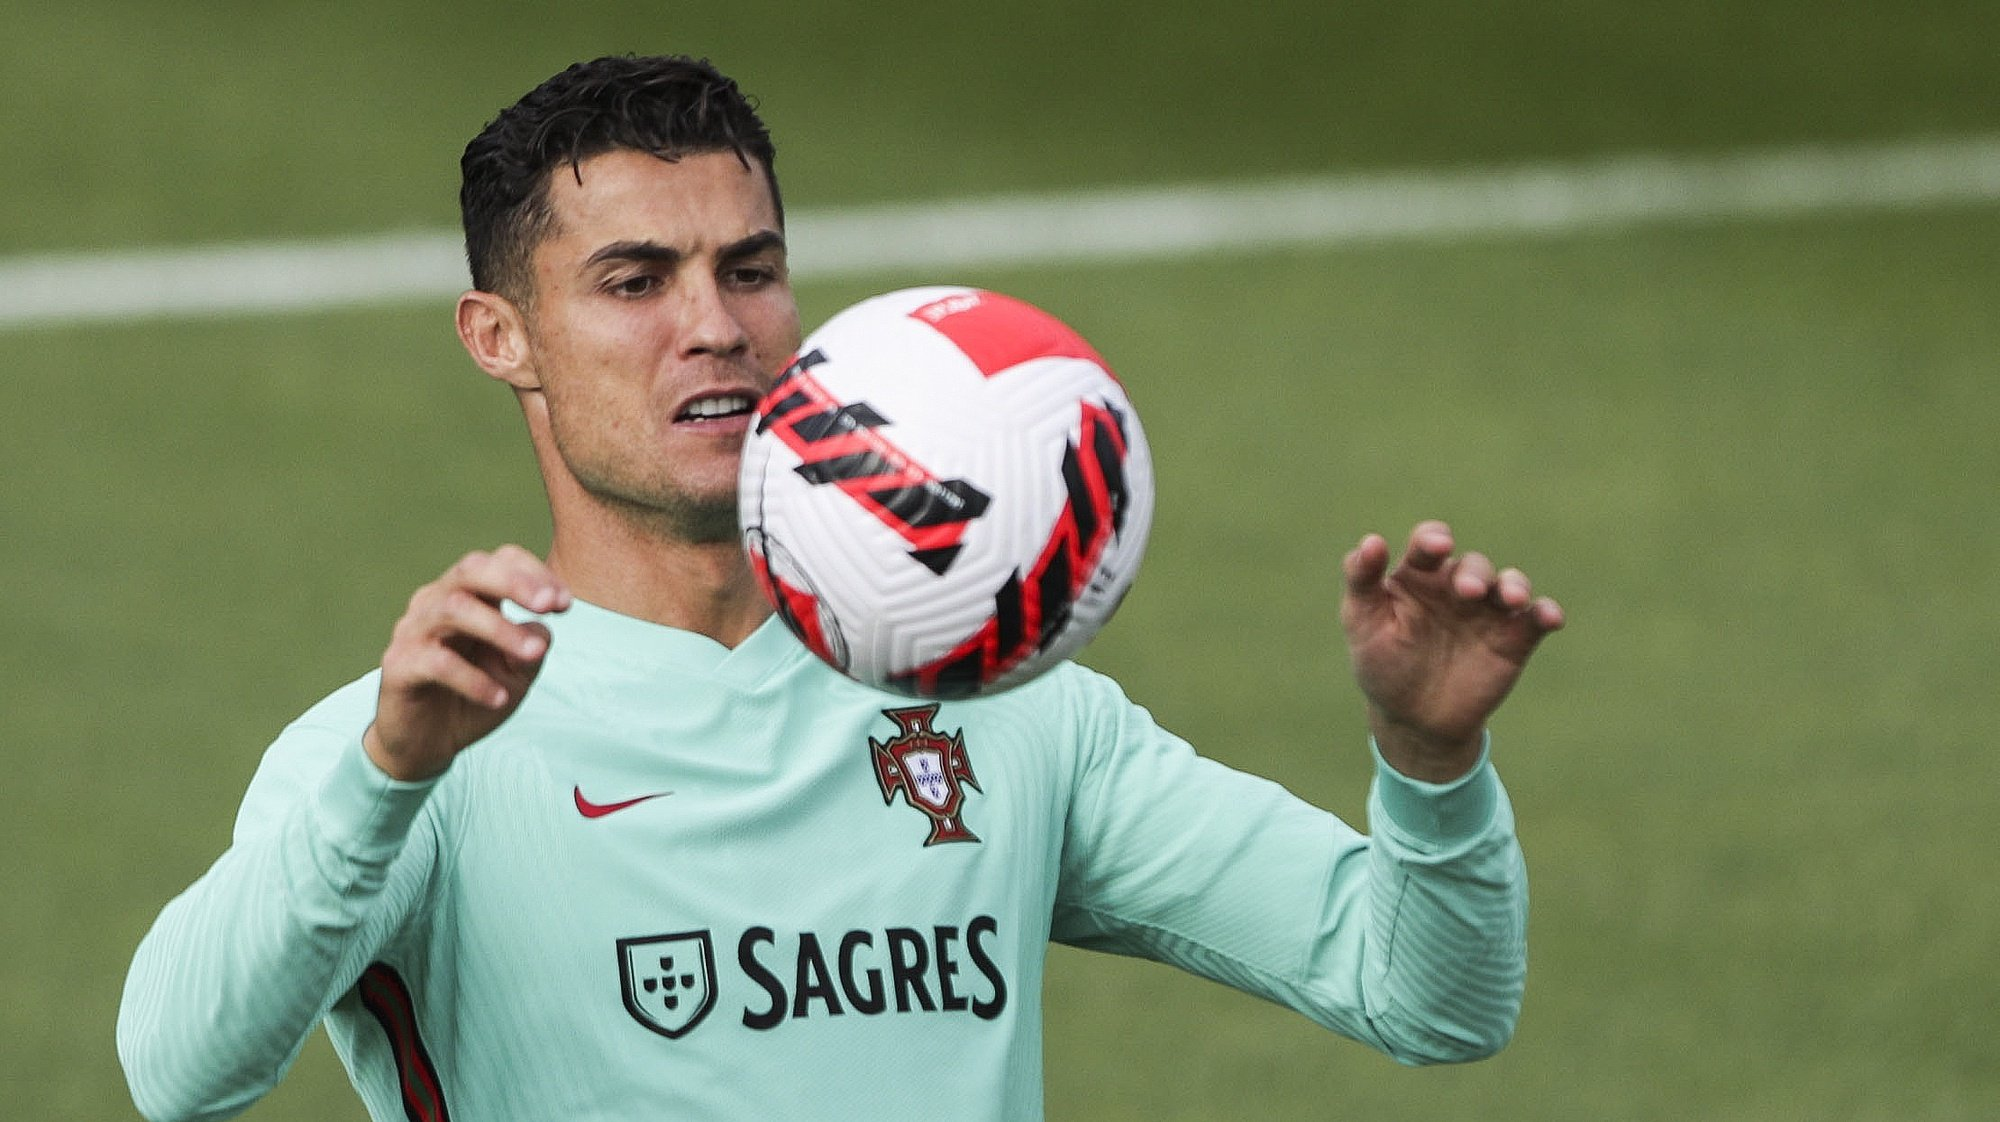 epa09507688 Portuguese soccer player Cristiano Ronaldo in action during Portugal´s national team training session at Oeiras, outskirts of Lisbon, Portugal, 05 October 2021.  EPA/TIAGO PETINGA